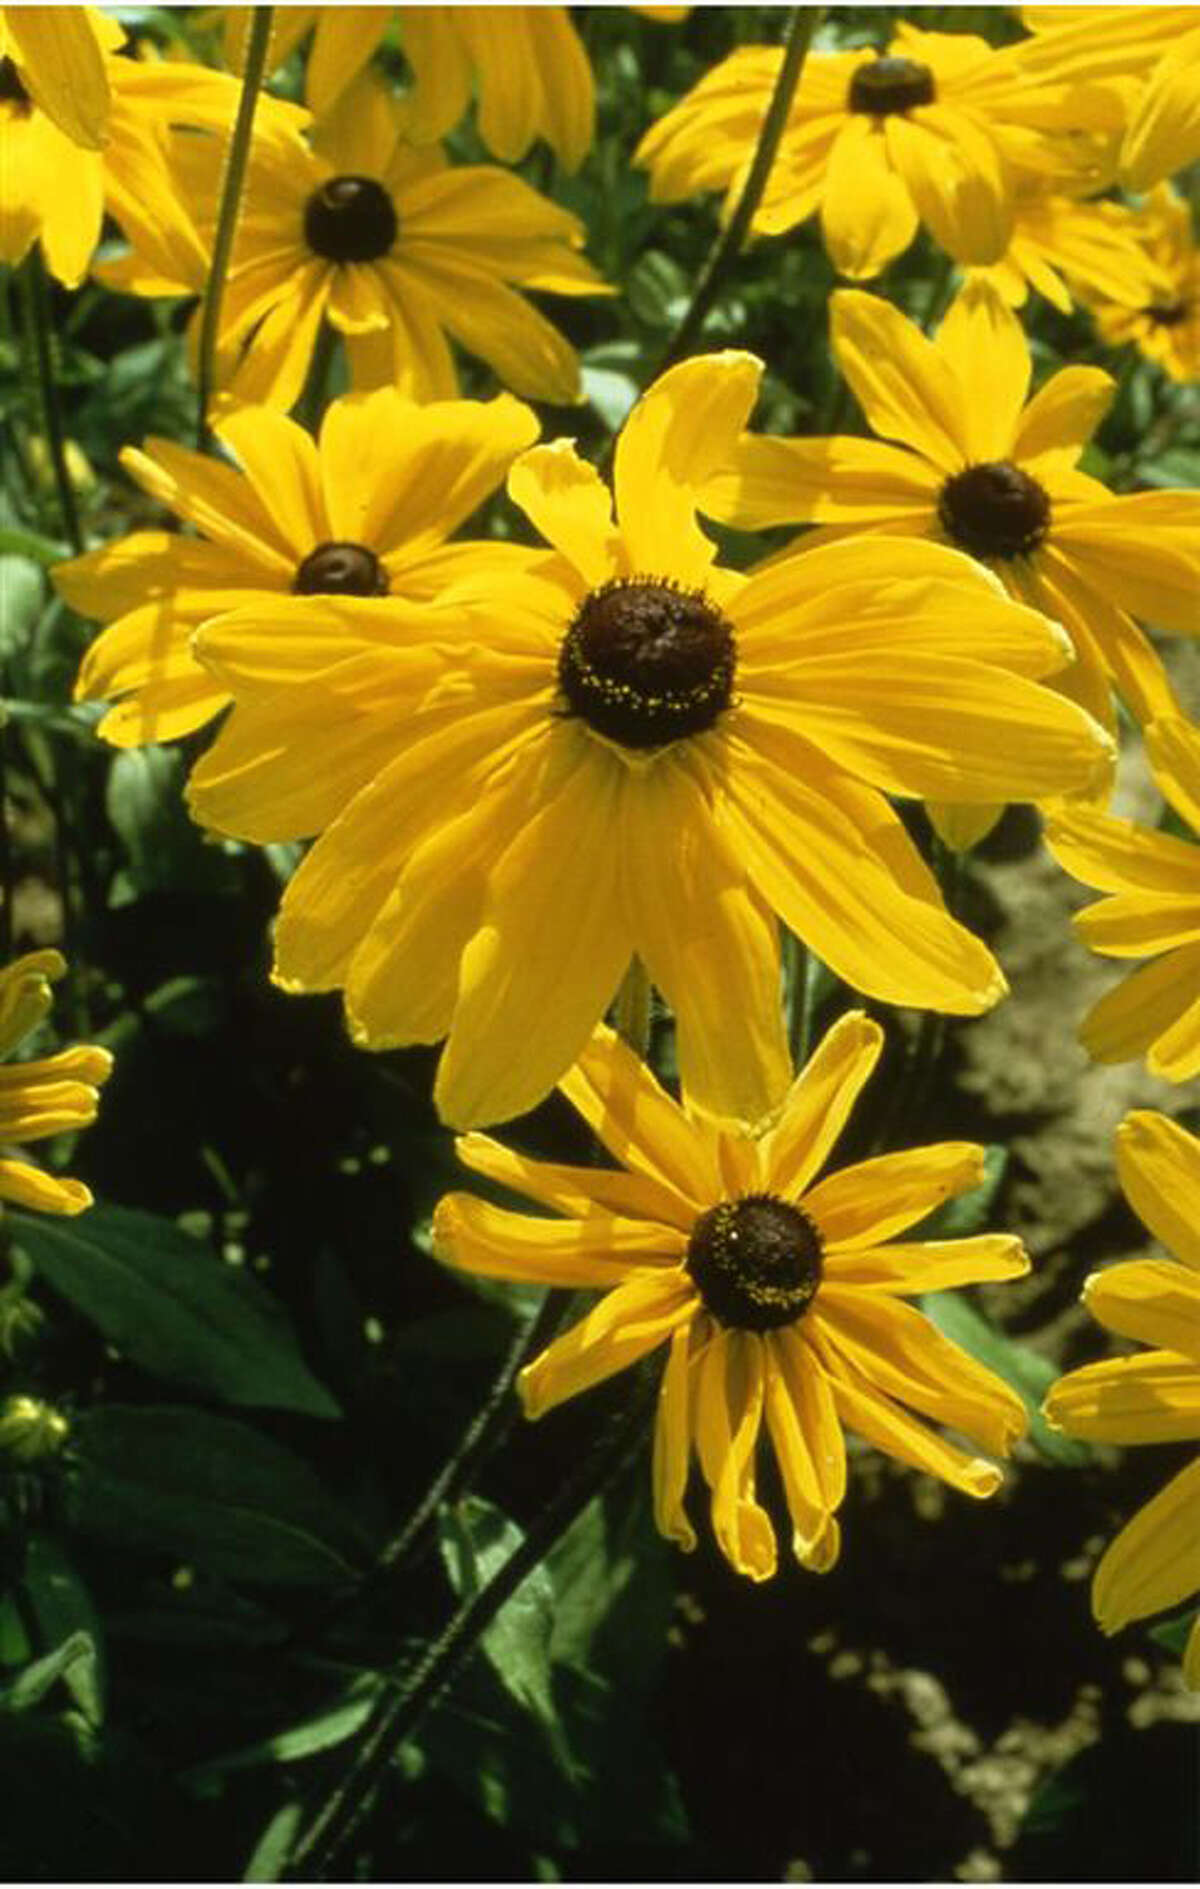 'Indian Summer' rudbeckia. The extra-large flowers are long-lasting in the garden and a vase. National Garden Bureau photo